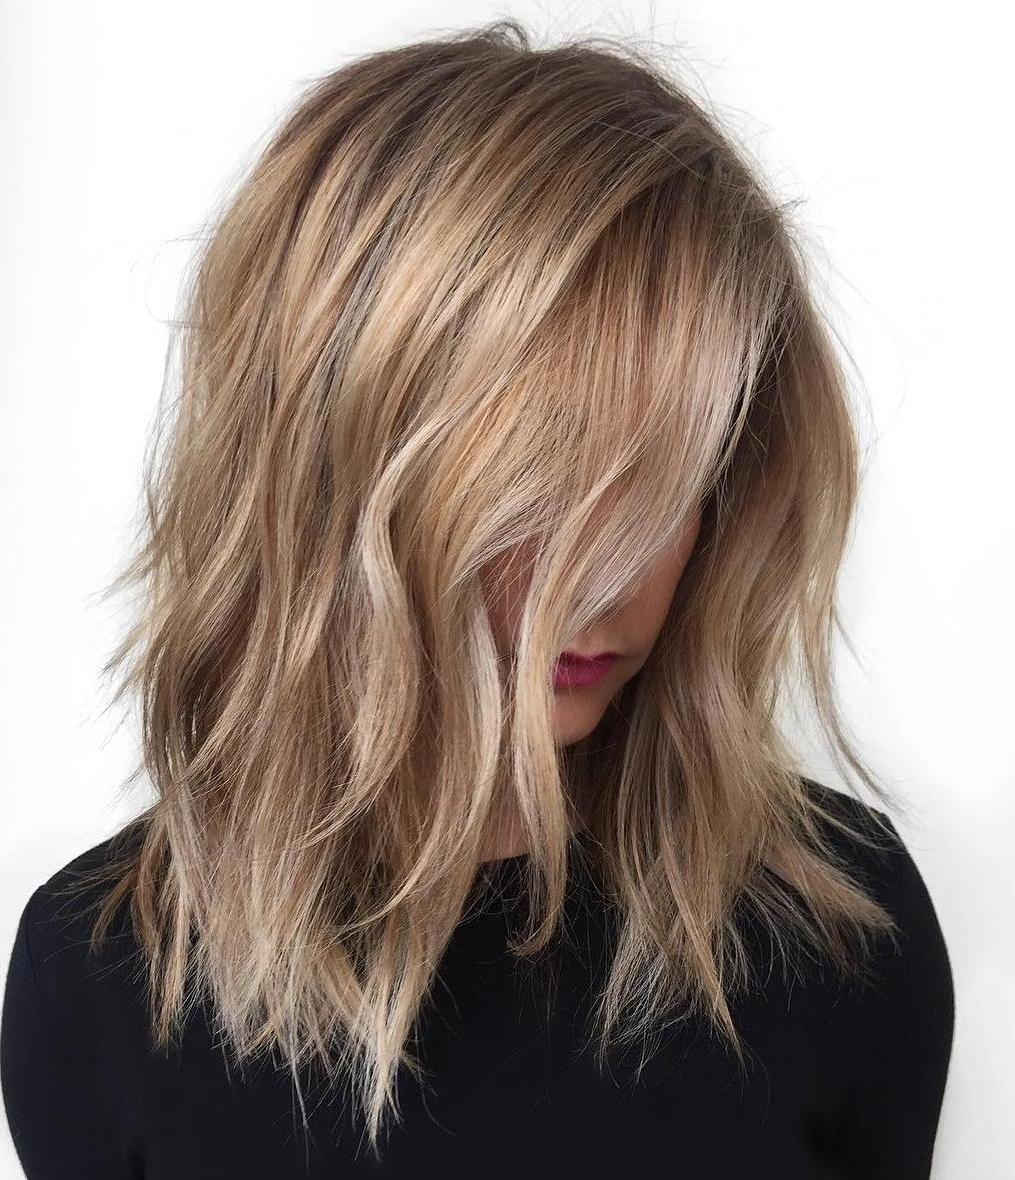 40 Styles With Medium Blonde Hair For Major Inspiration Regarding Fashionable Amber Waves Blonde Hairstyles (View 2 of 20)